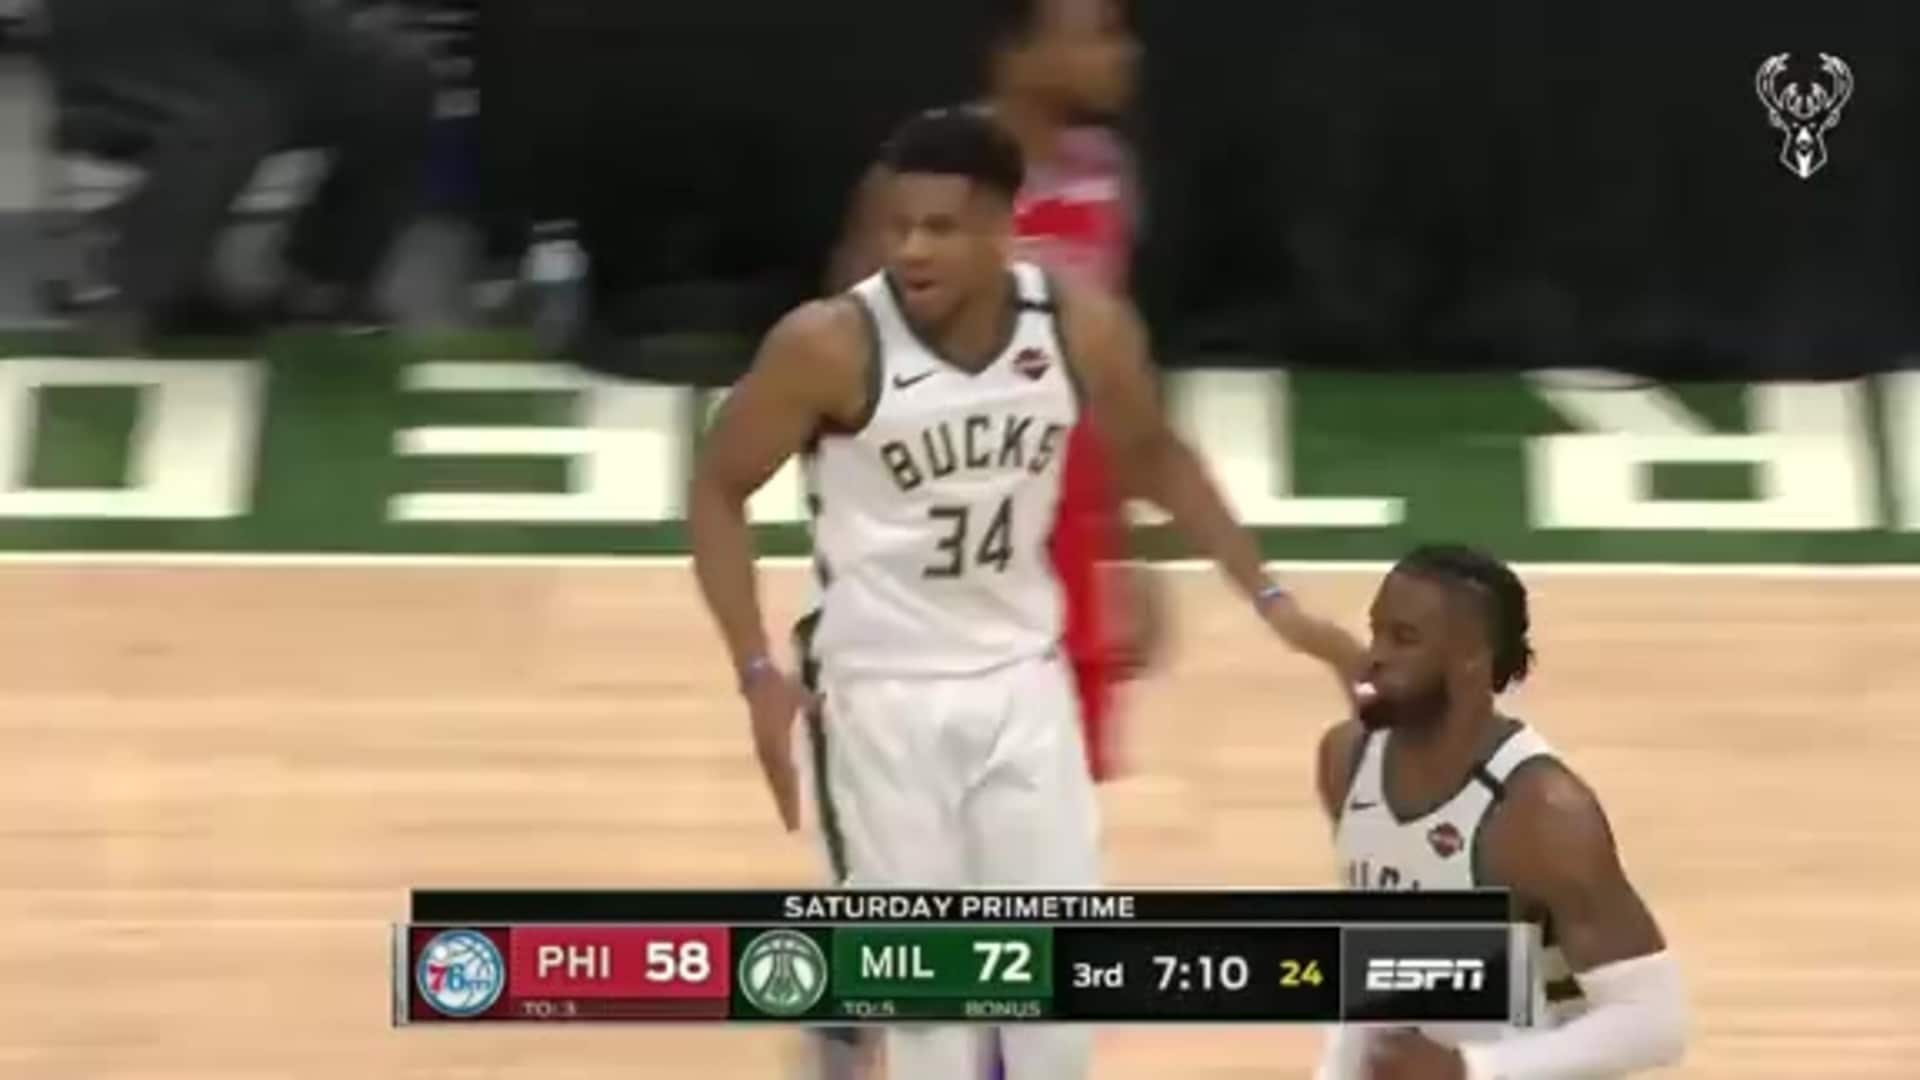 Game Highlights: Bucks 119 - Sixers 98 | 2.22.20